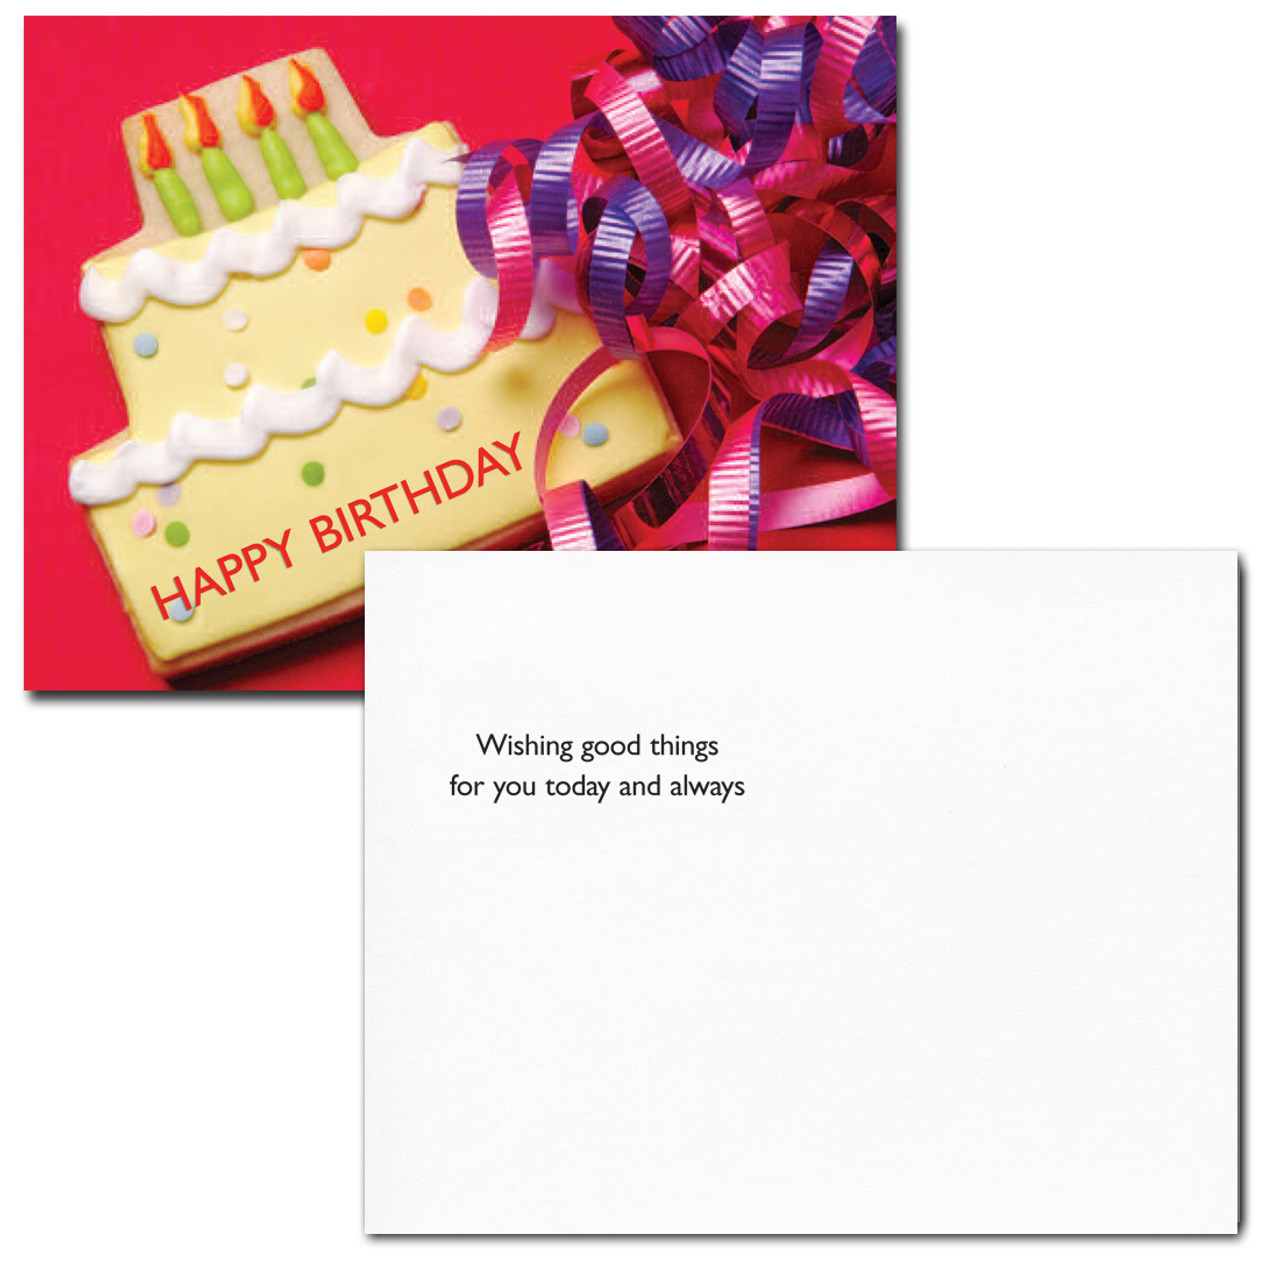 Birthday Postcard Cookie Cake greeting reads: Wishing good things for you today and always